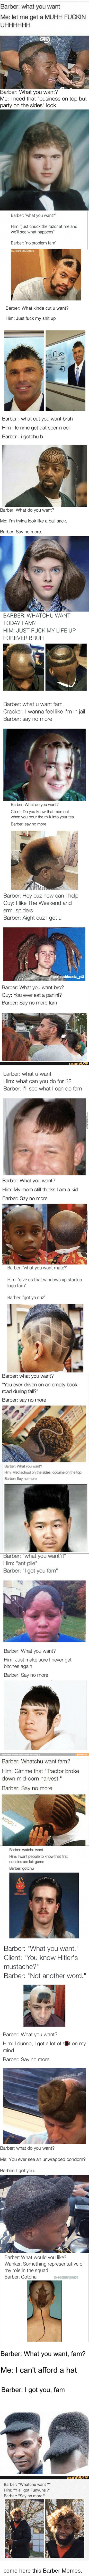 Barber What You Want